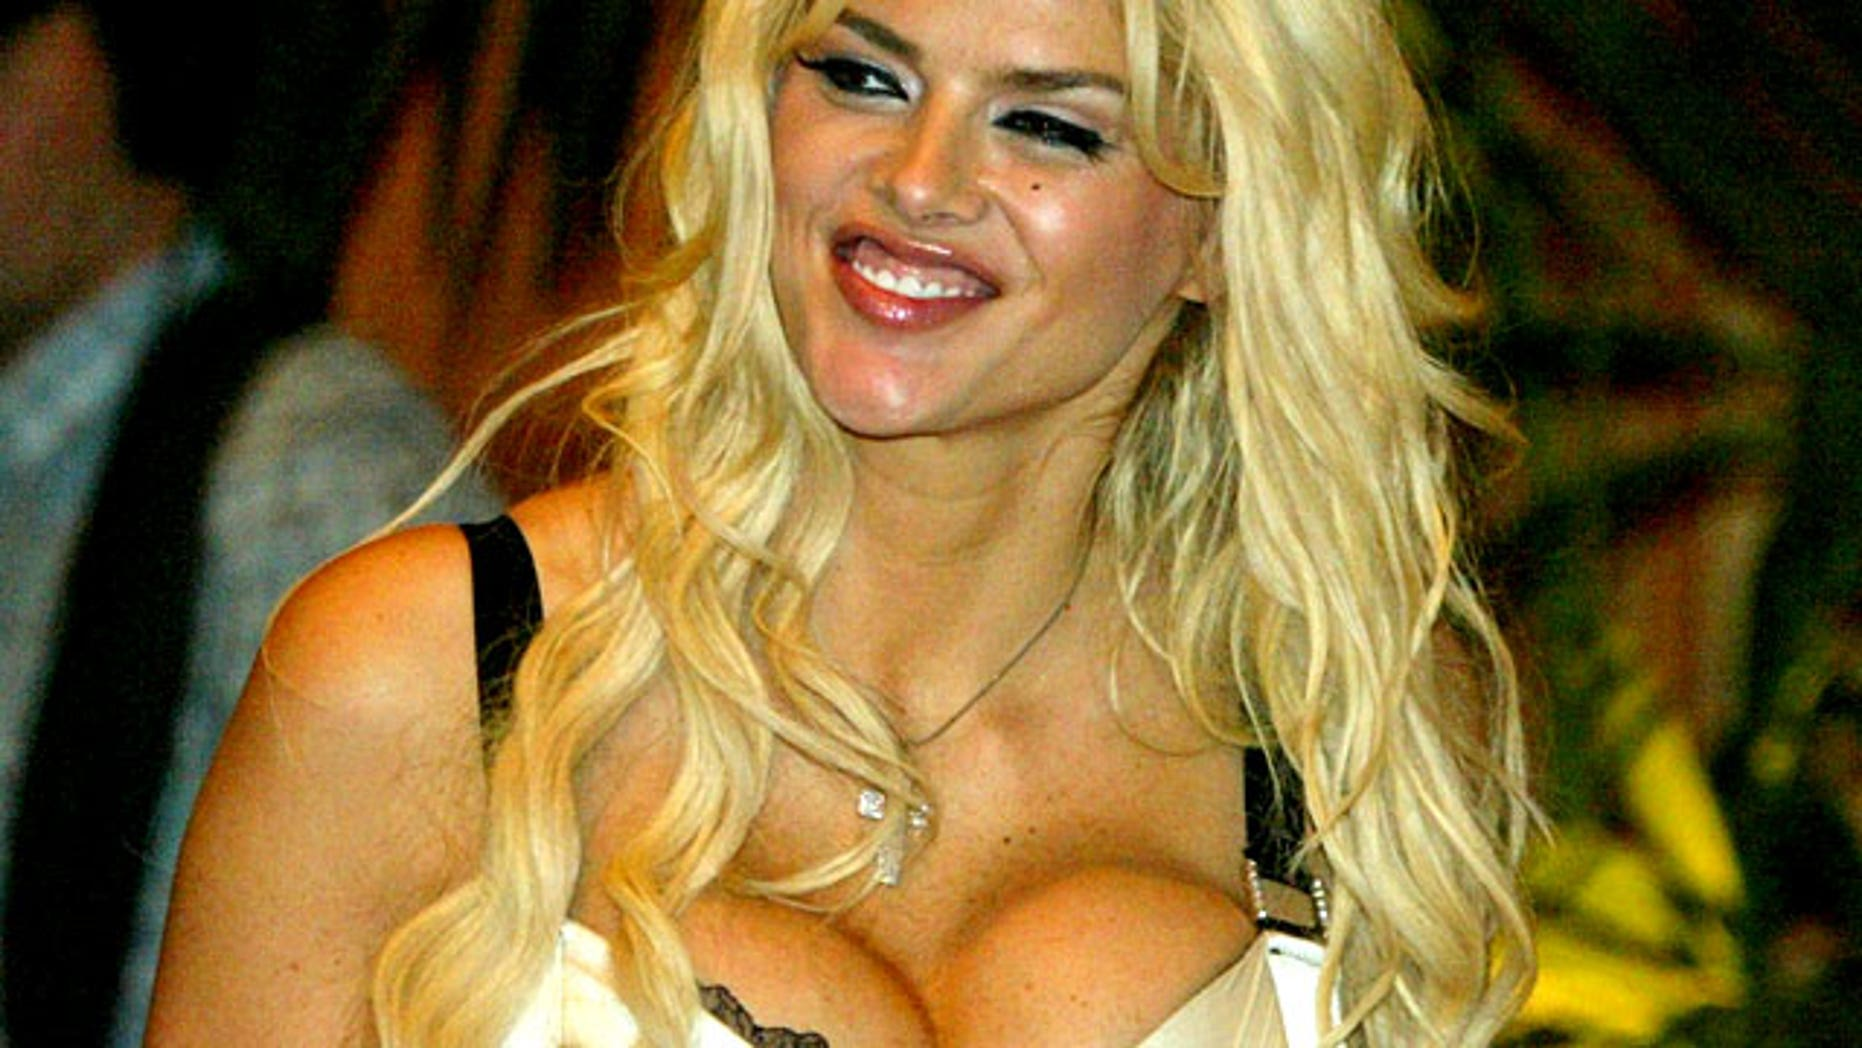 FILE: A photo of Anna Nicole Smith before her death in February of 2007.